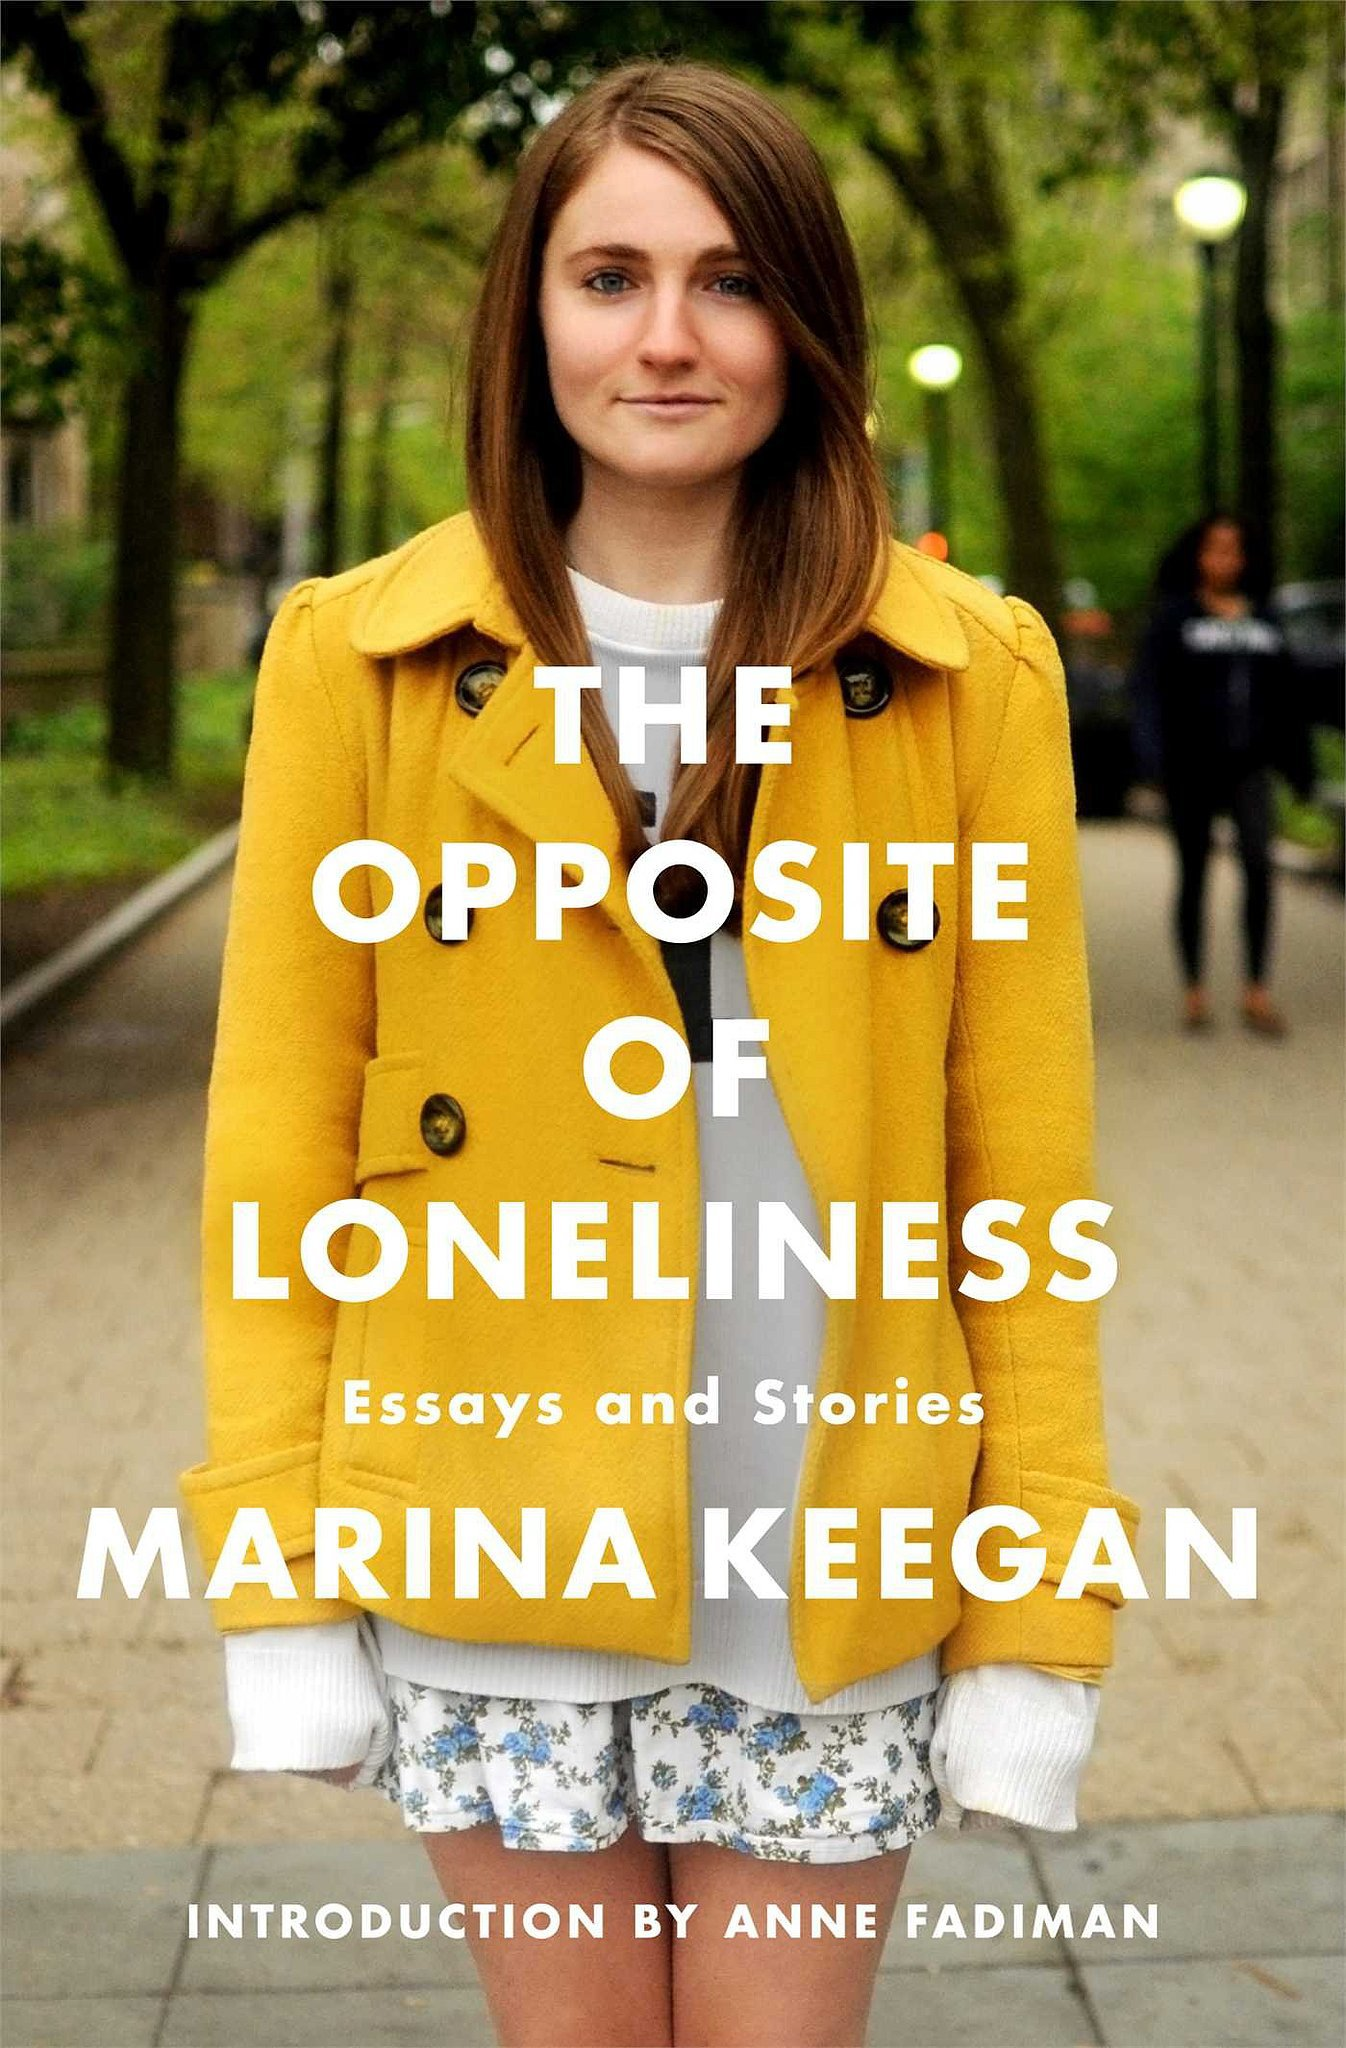 the opposite of loneliness essay yale The opposite of loneliness essay yale xbox essay quoting essays harvard system building a test to assess creative and critical thinking simultaneously.